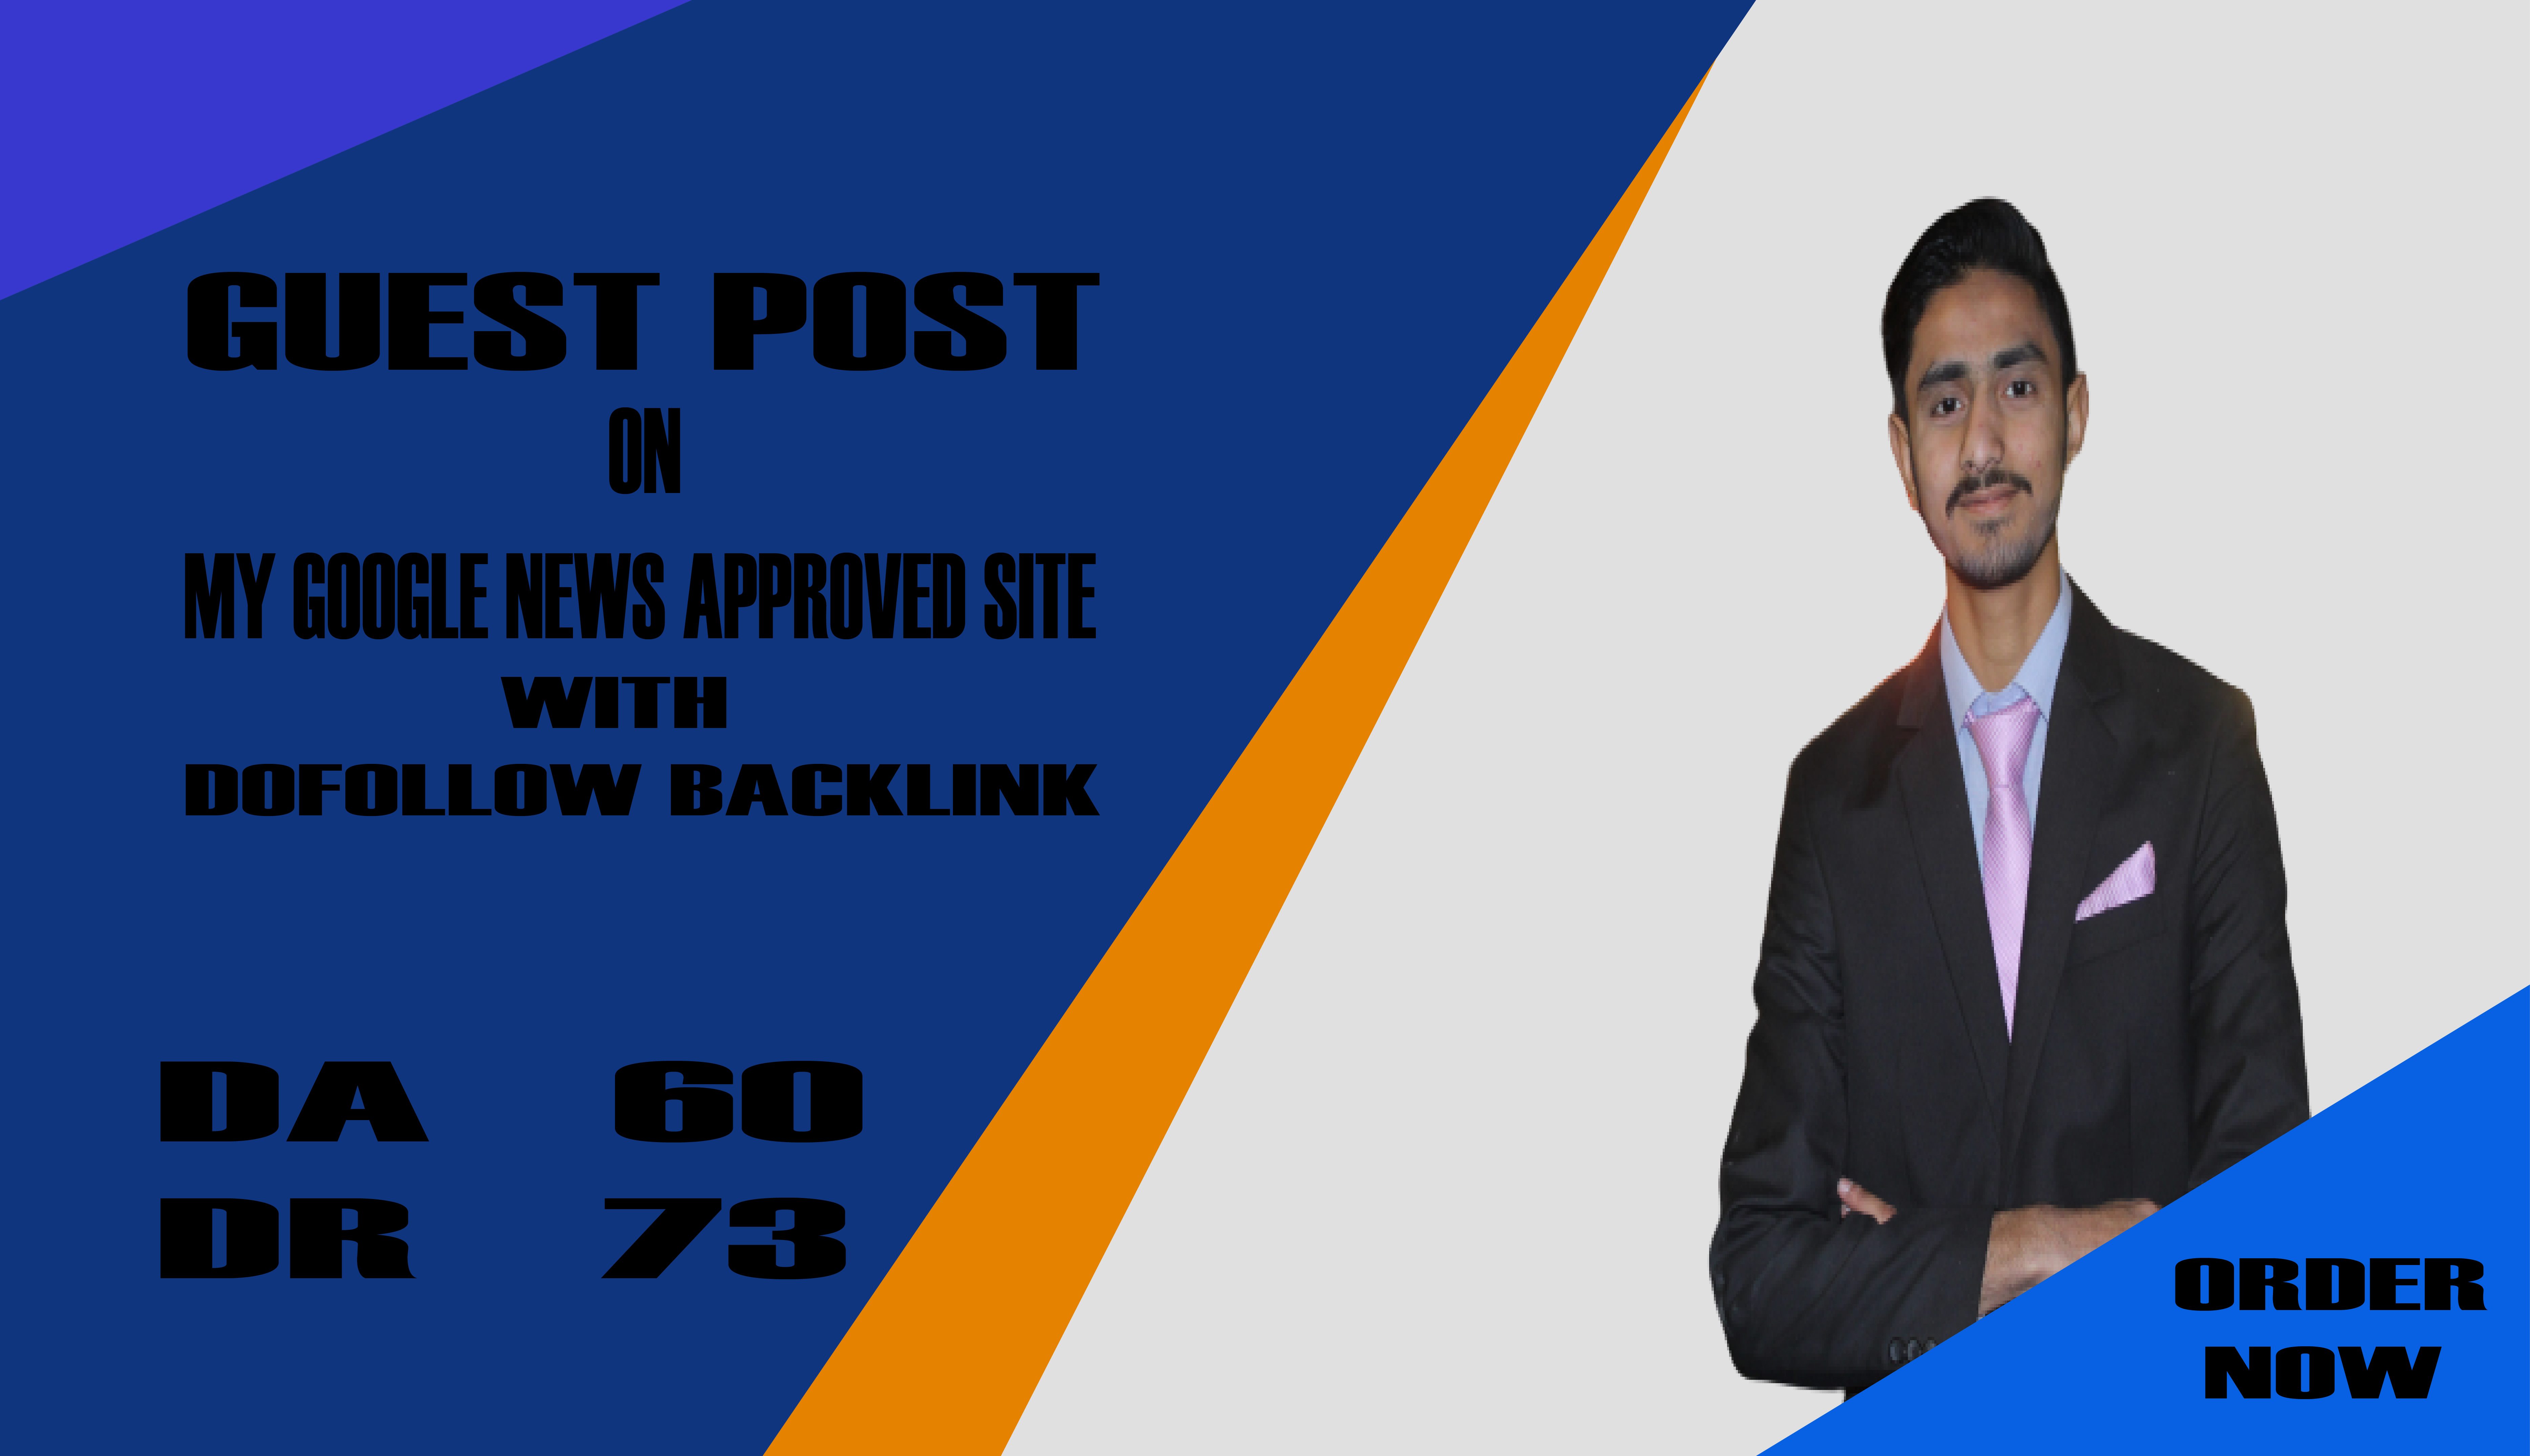 I will do guest post on my google news approved site DR 73